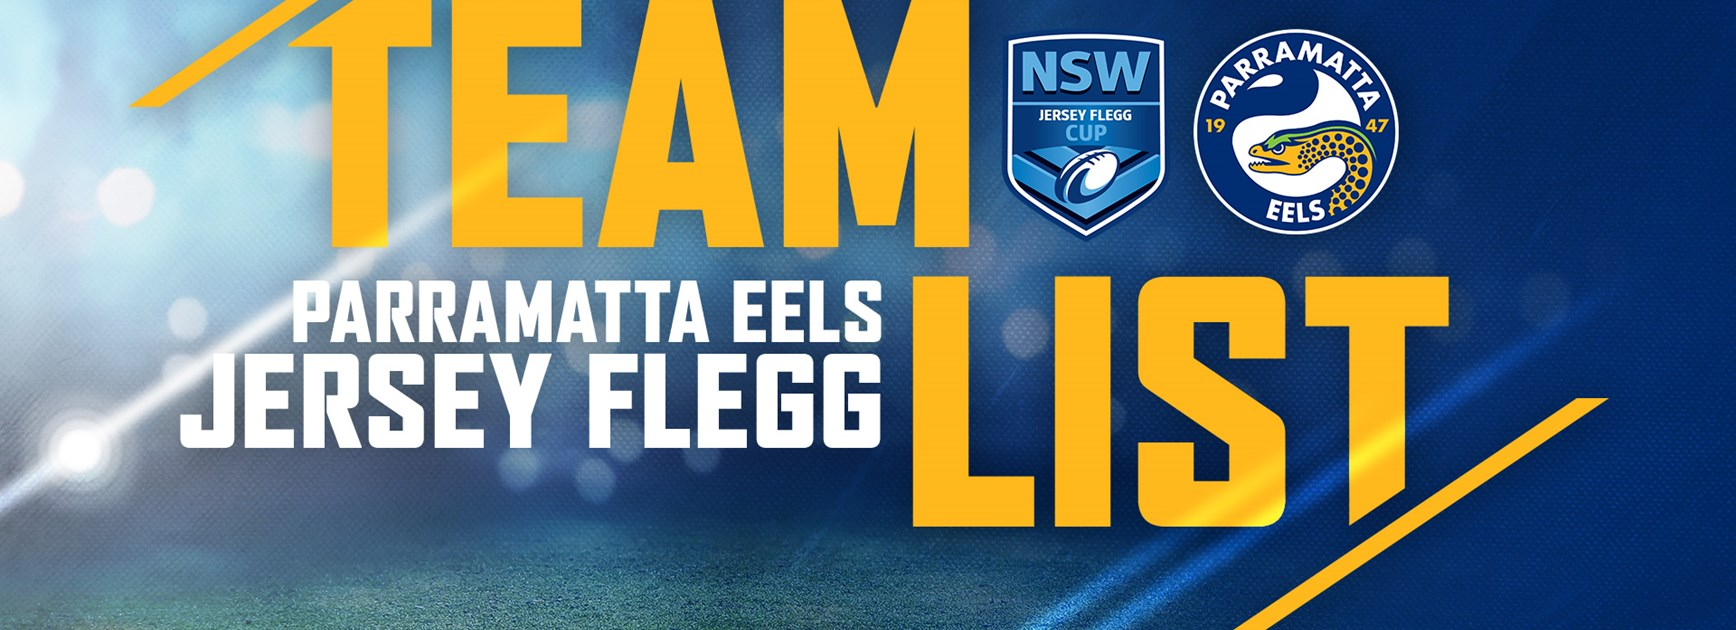 Jersey Flegg v Dragons Round 20 Team List